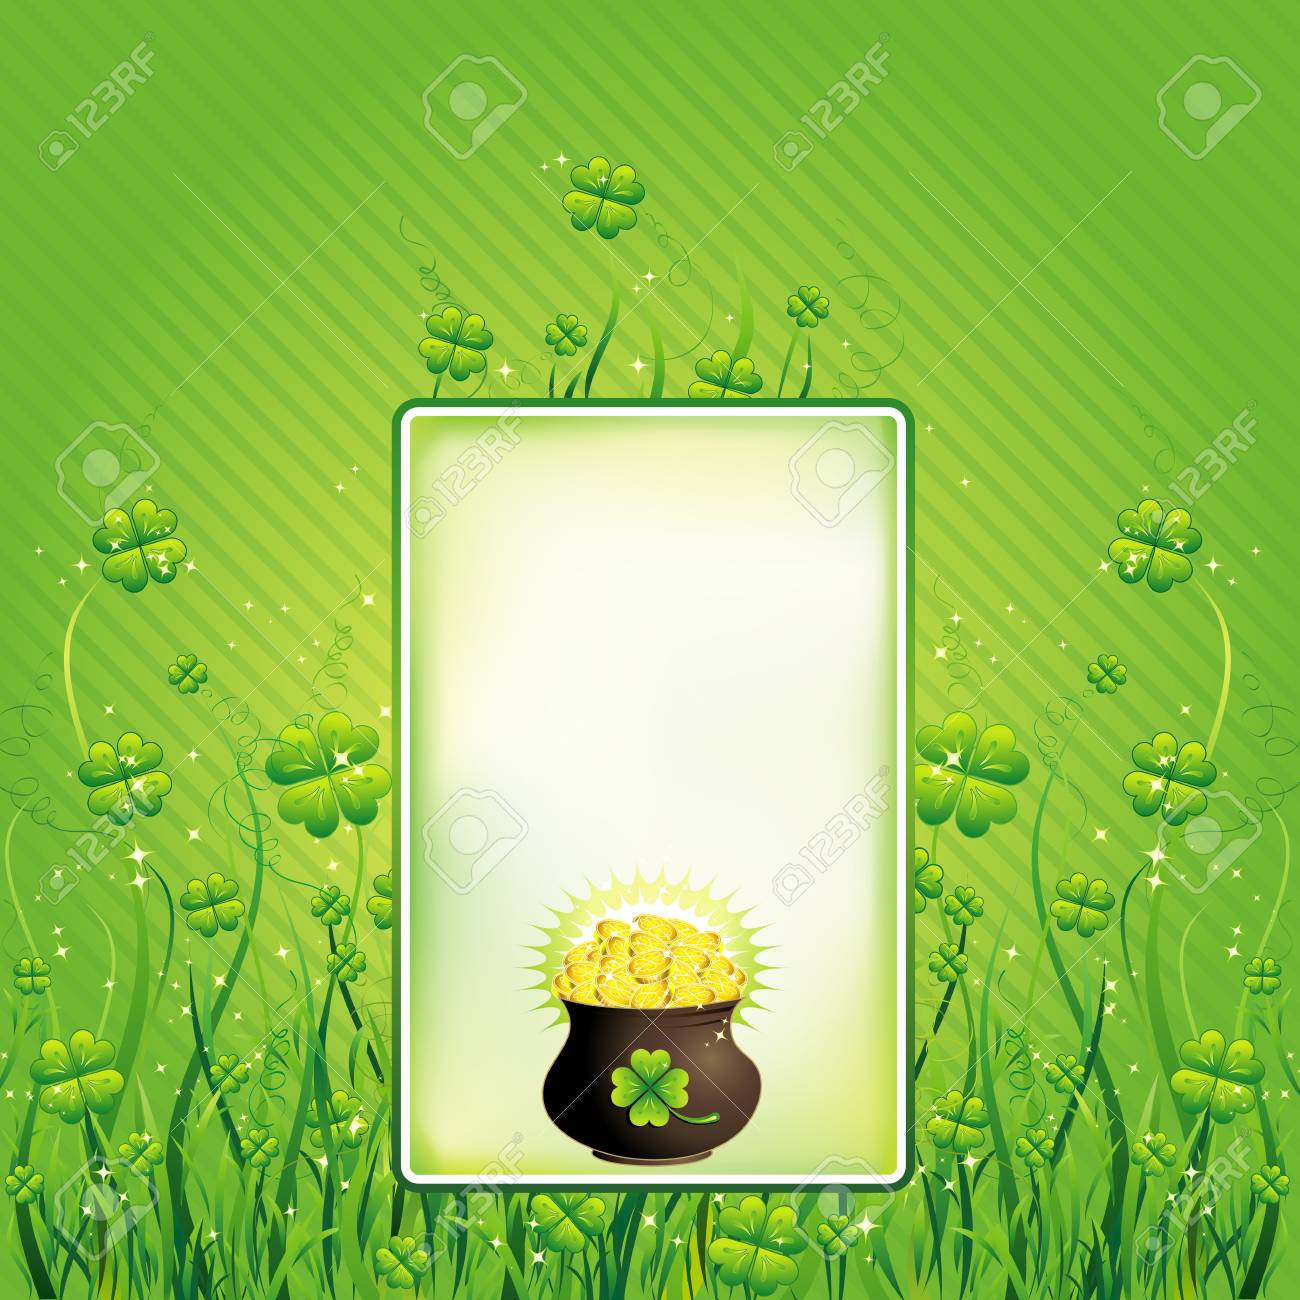 Card for St. Patrick's Day Stock Vector - 2466354